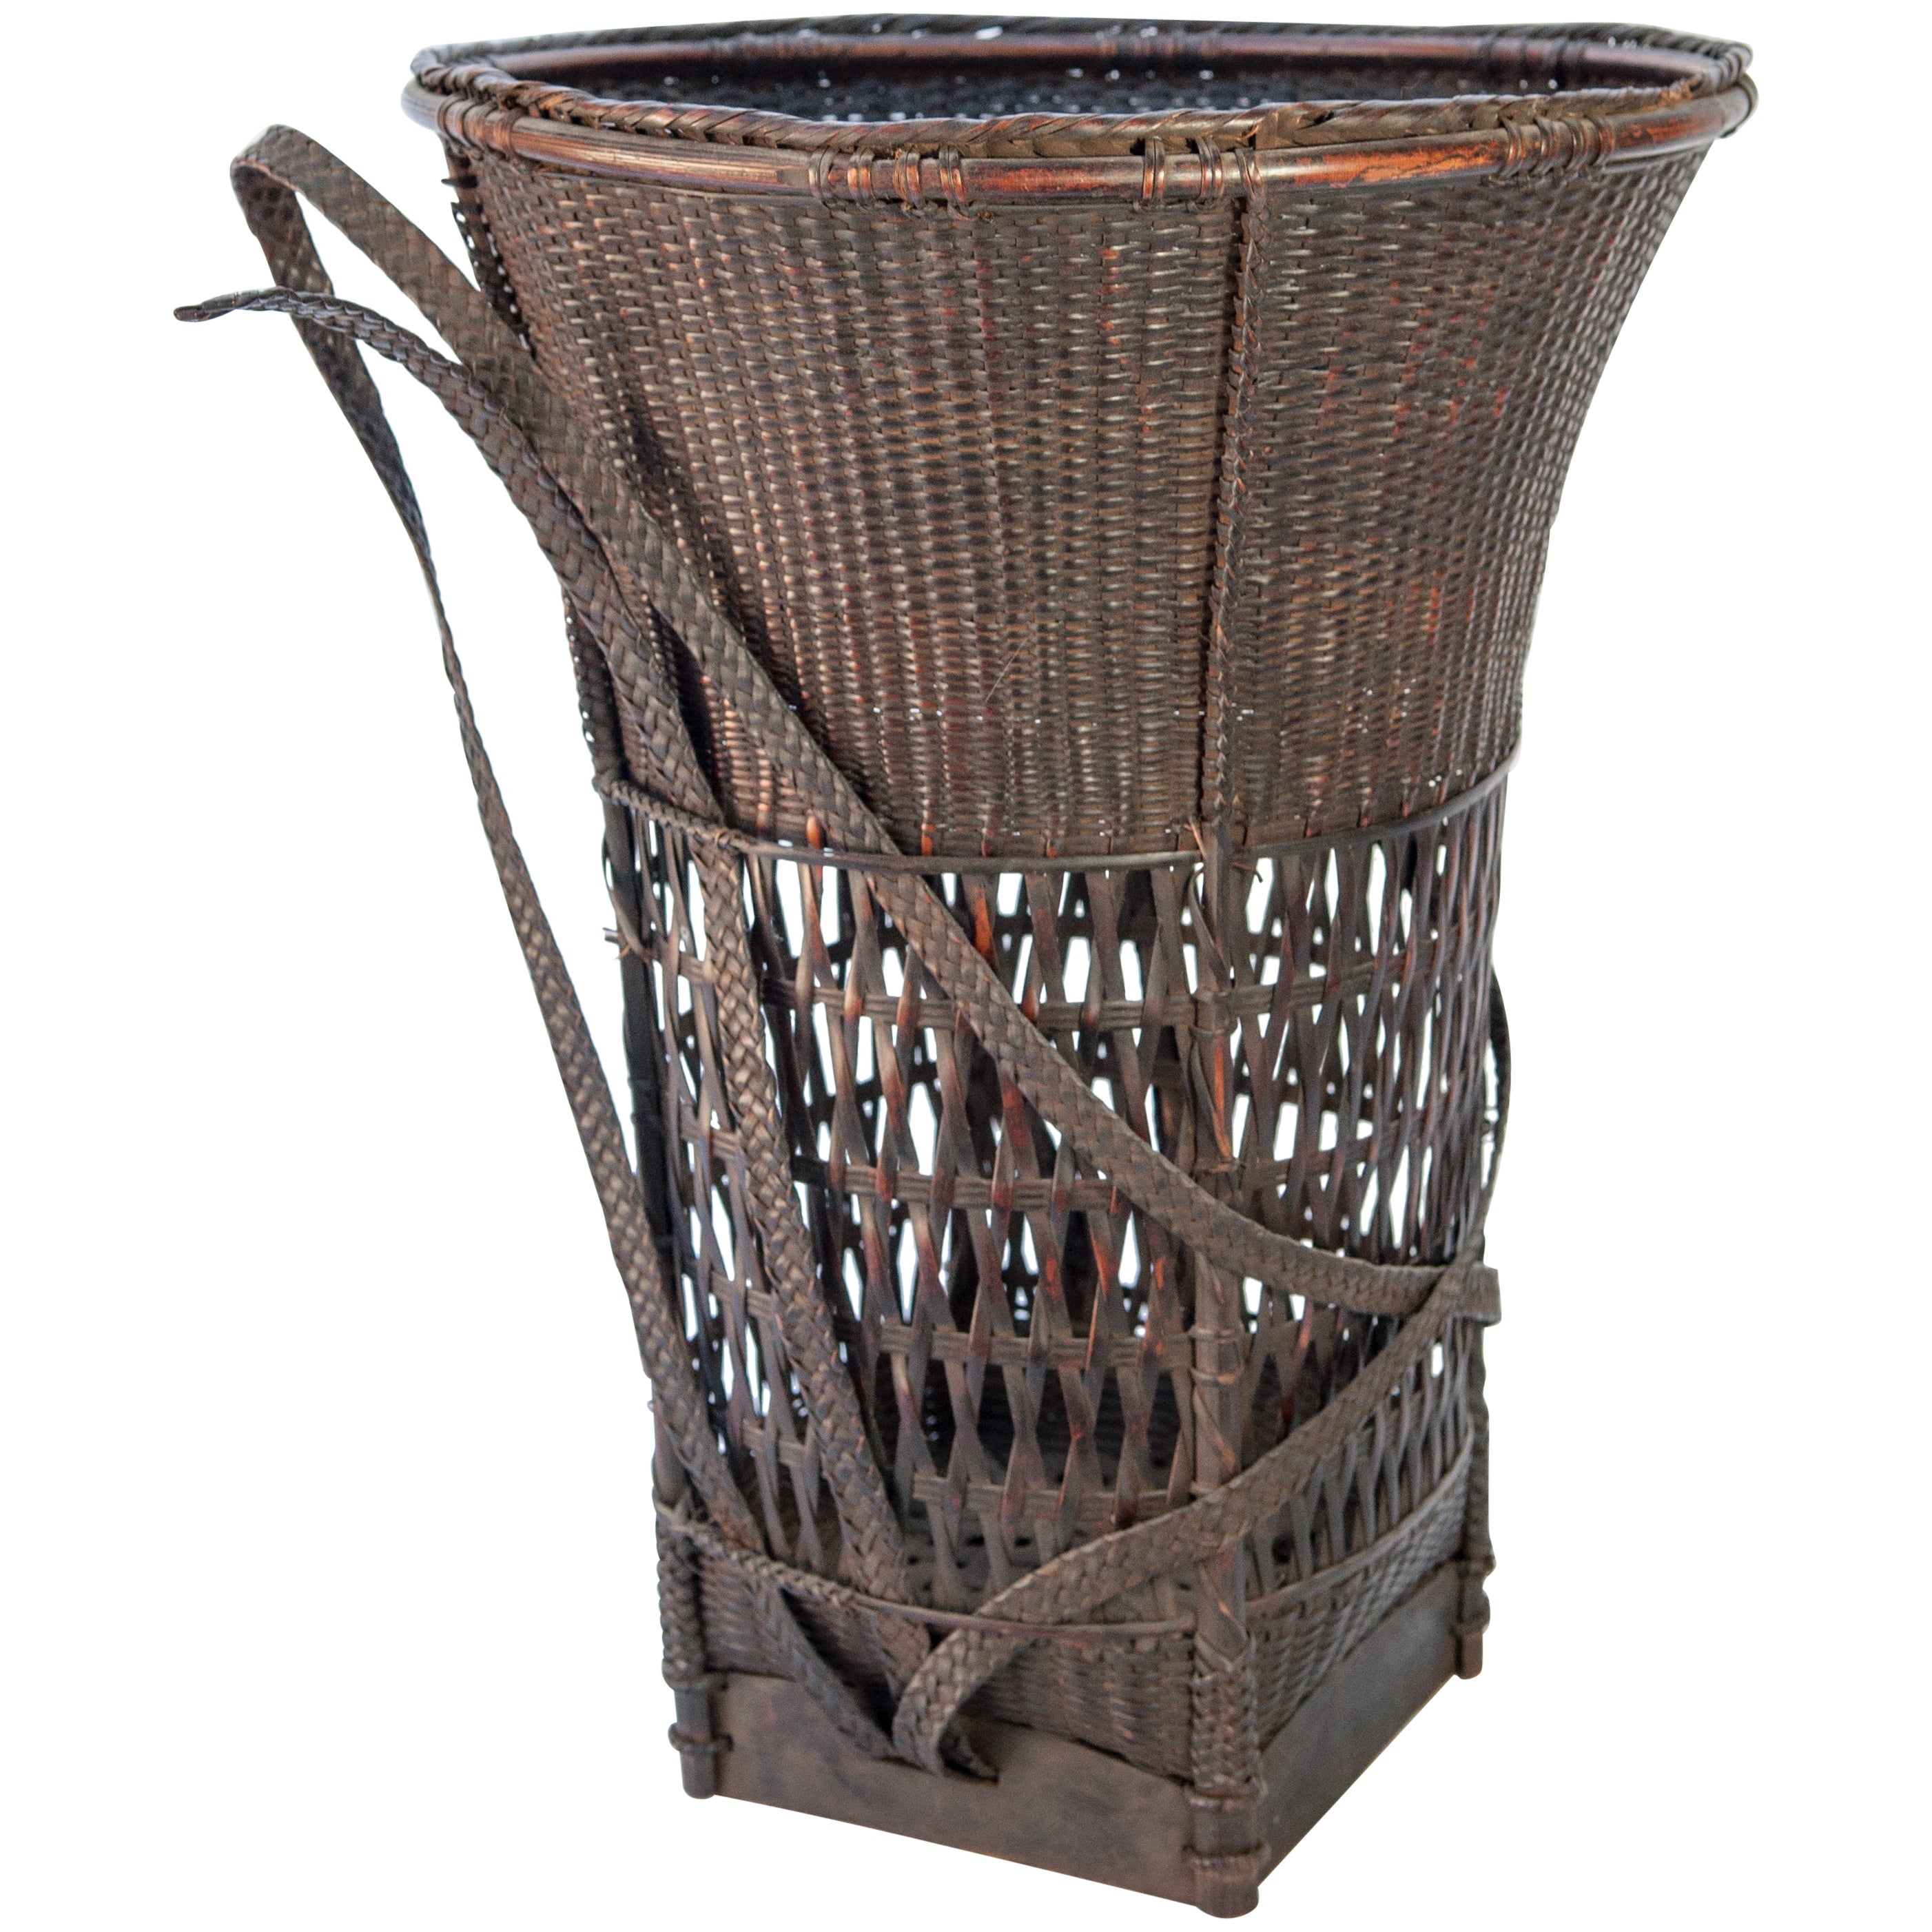 Carrying Basket From Laos, Mid 20Th Century, Bamboo And Rattan With